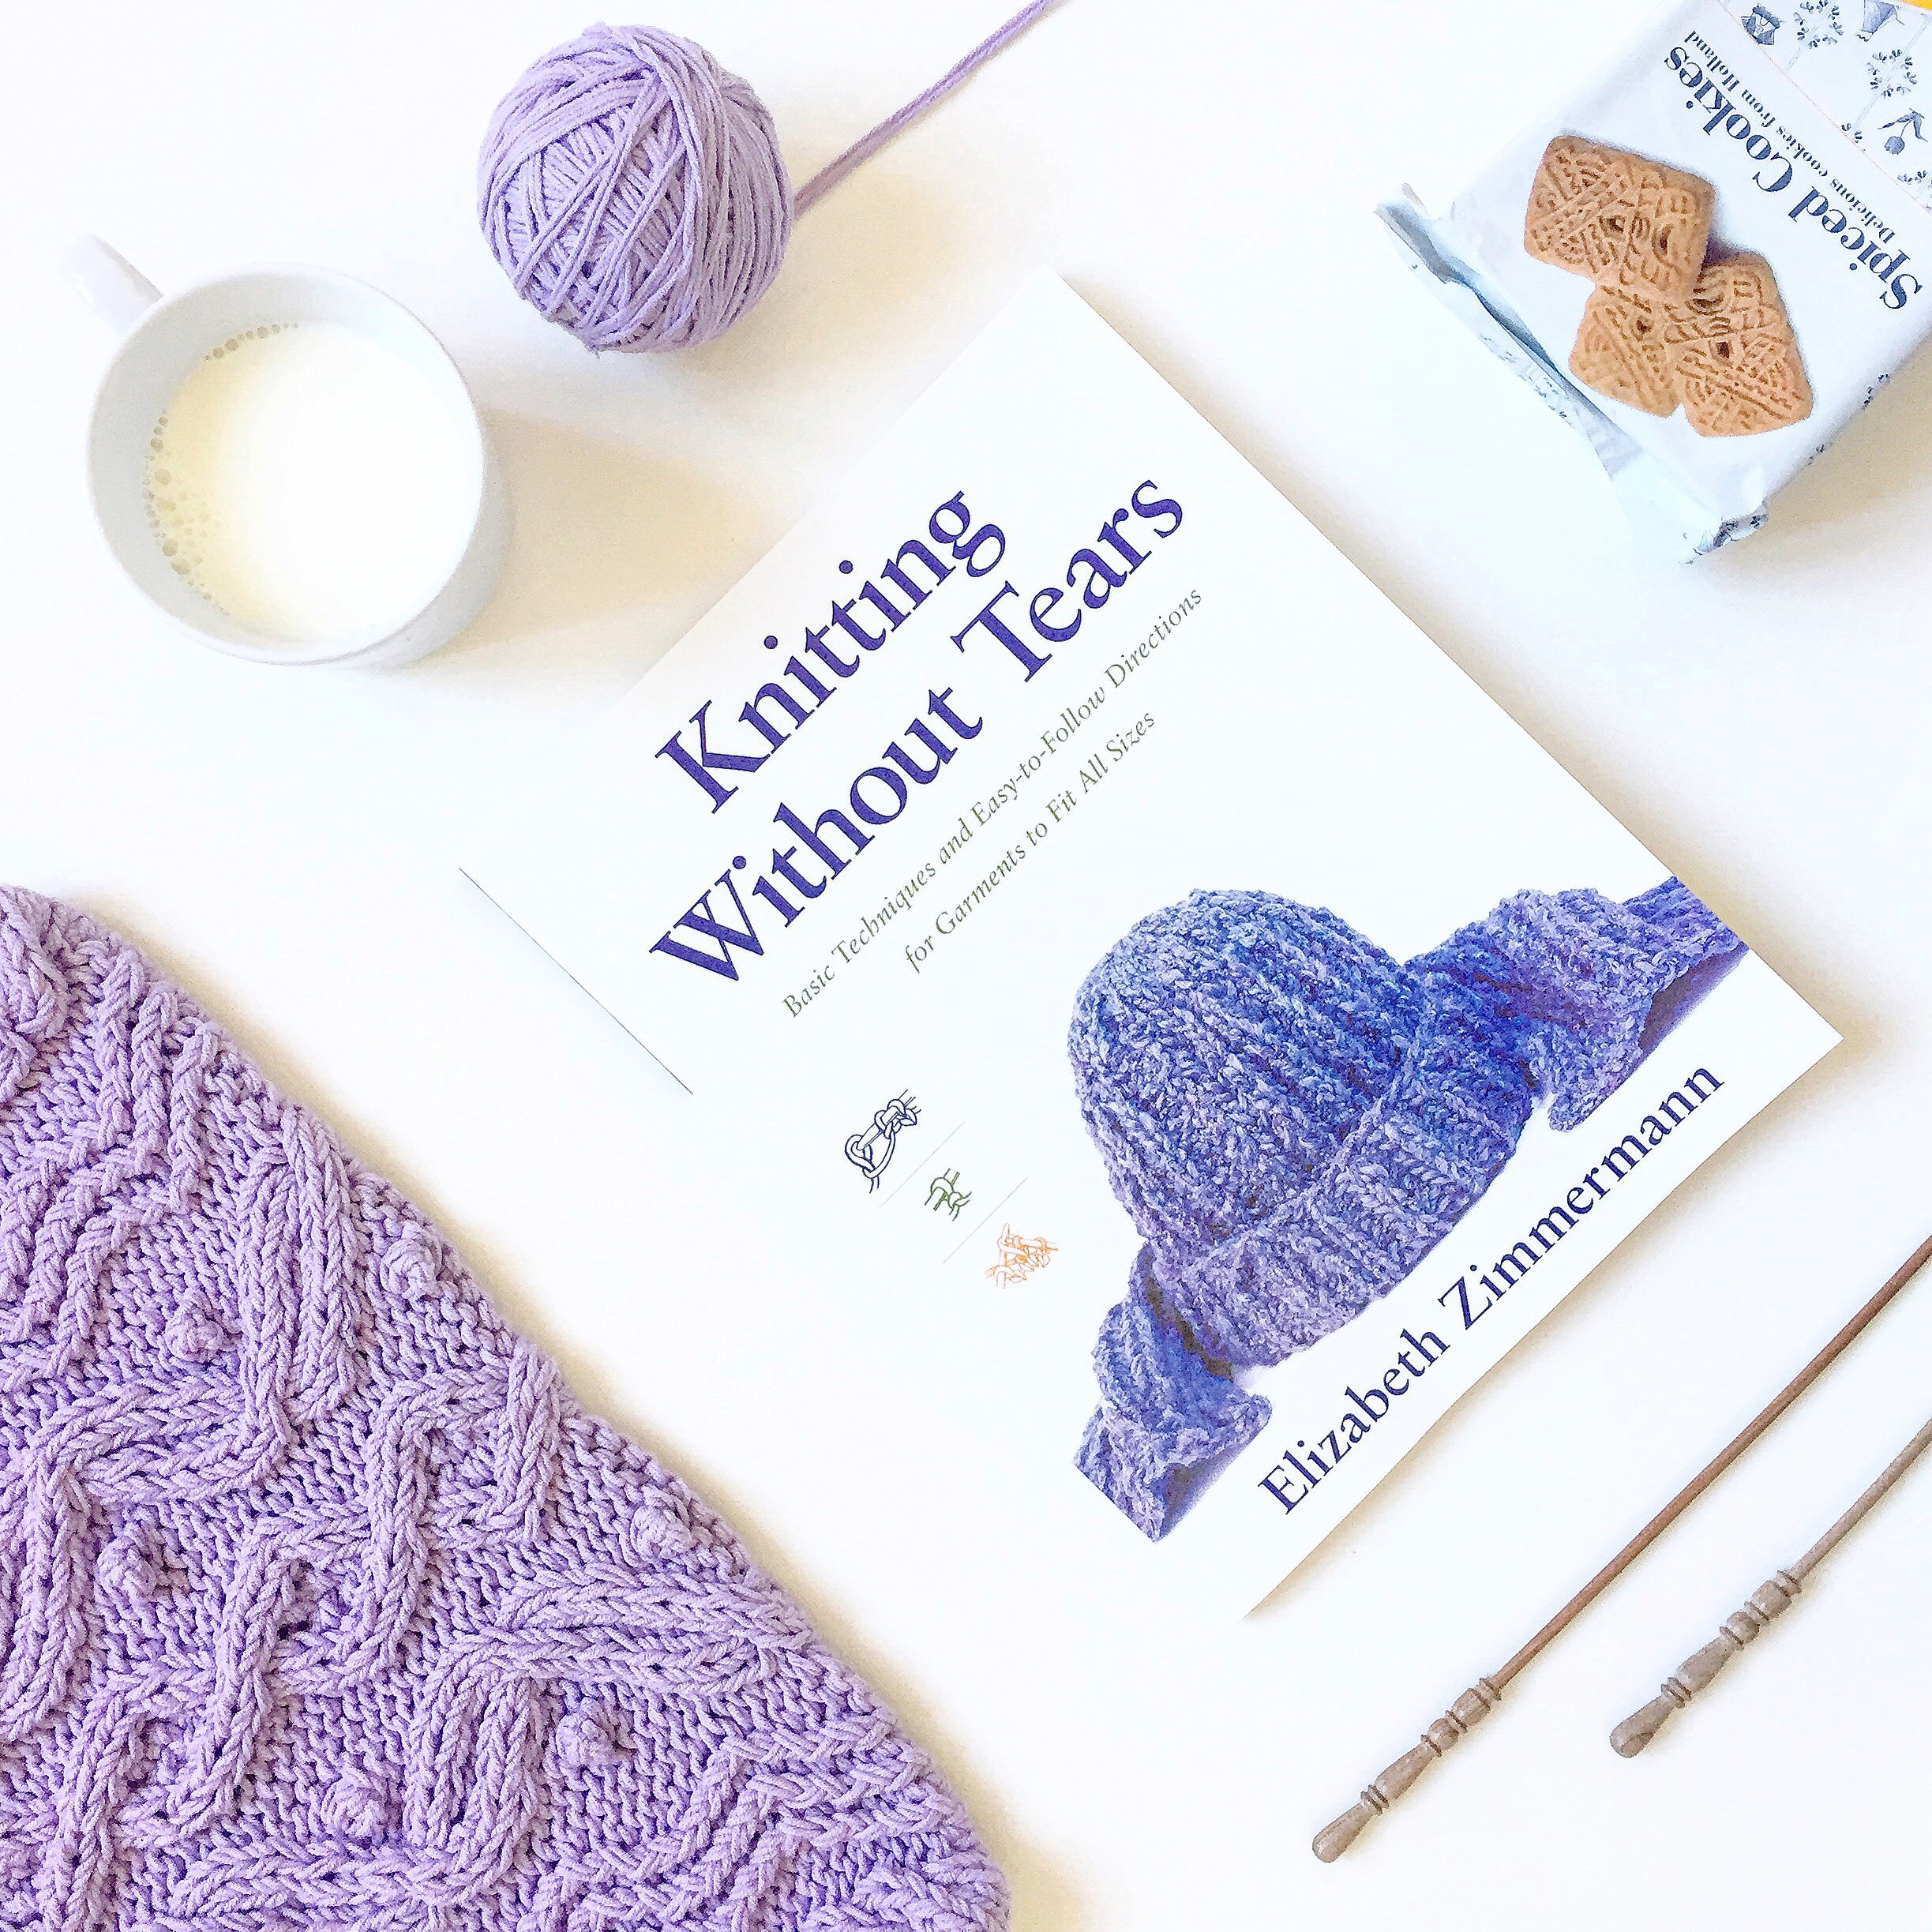 Knitting without tears book review